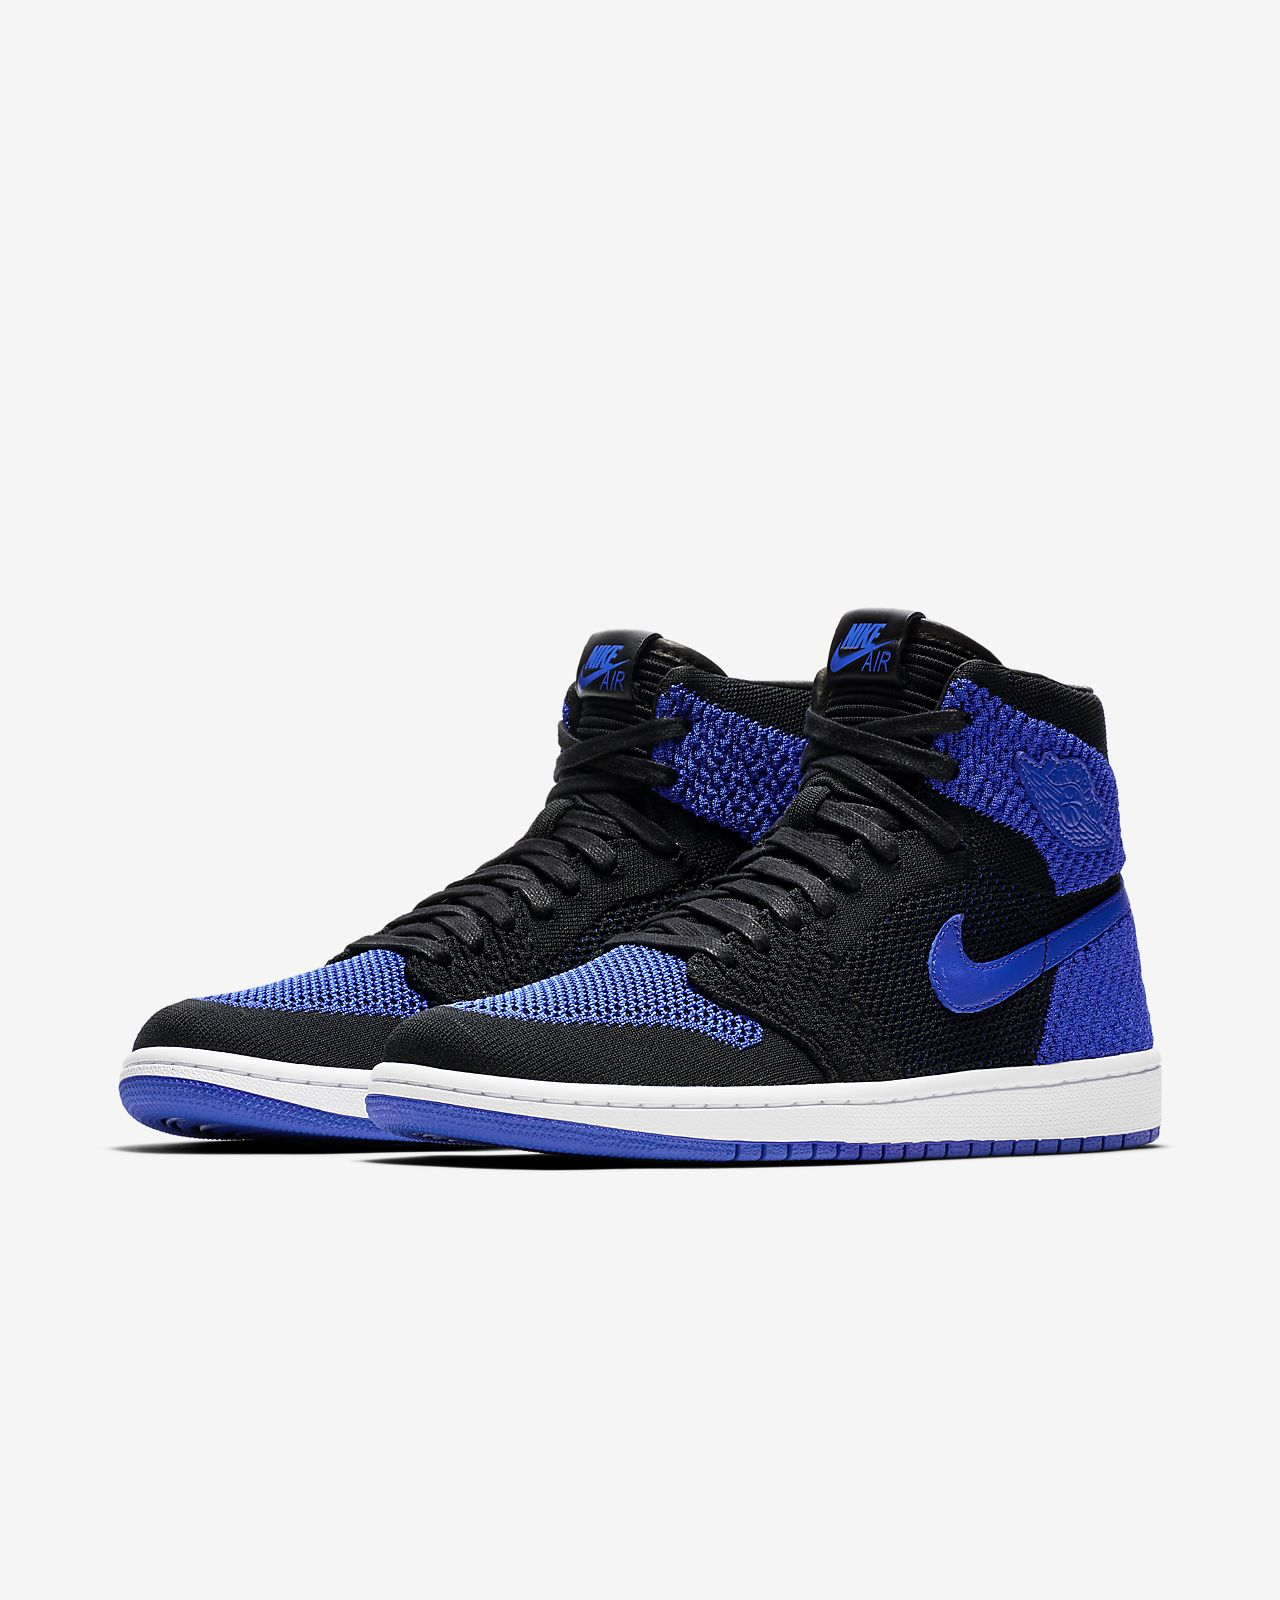 new product c7011 52225 ... Calzado para hombre Air Jordan 1 Retro High Flyknit